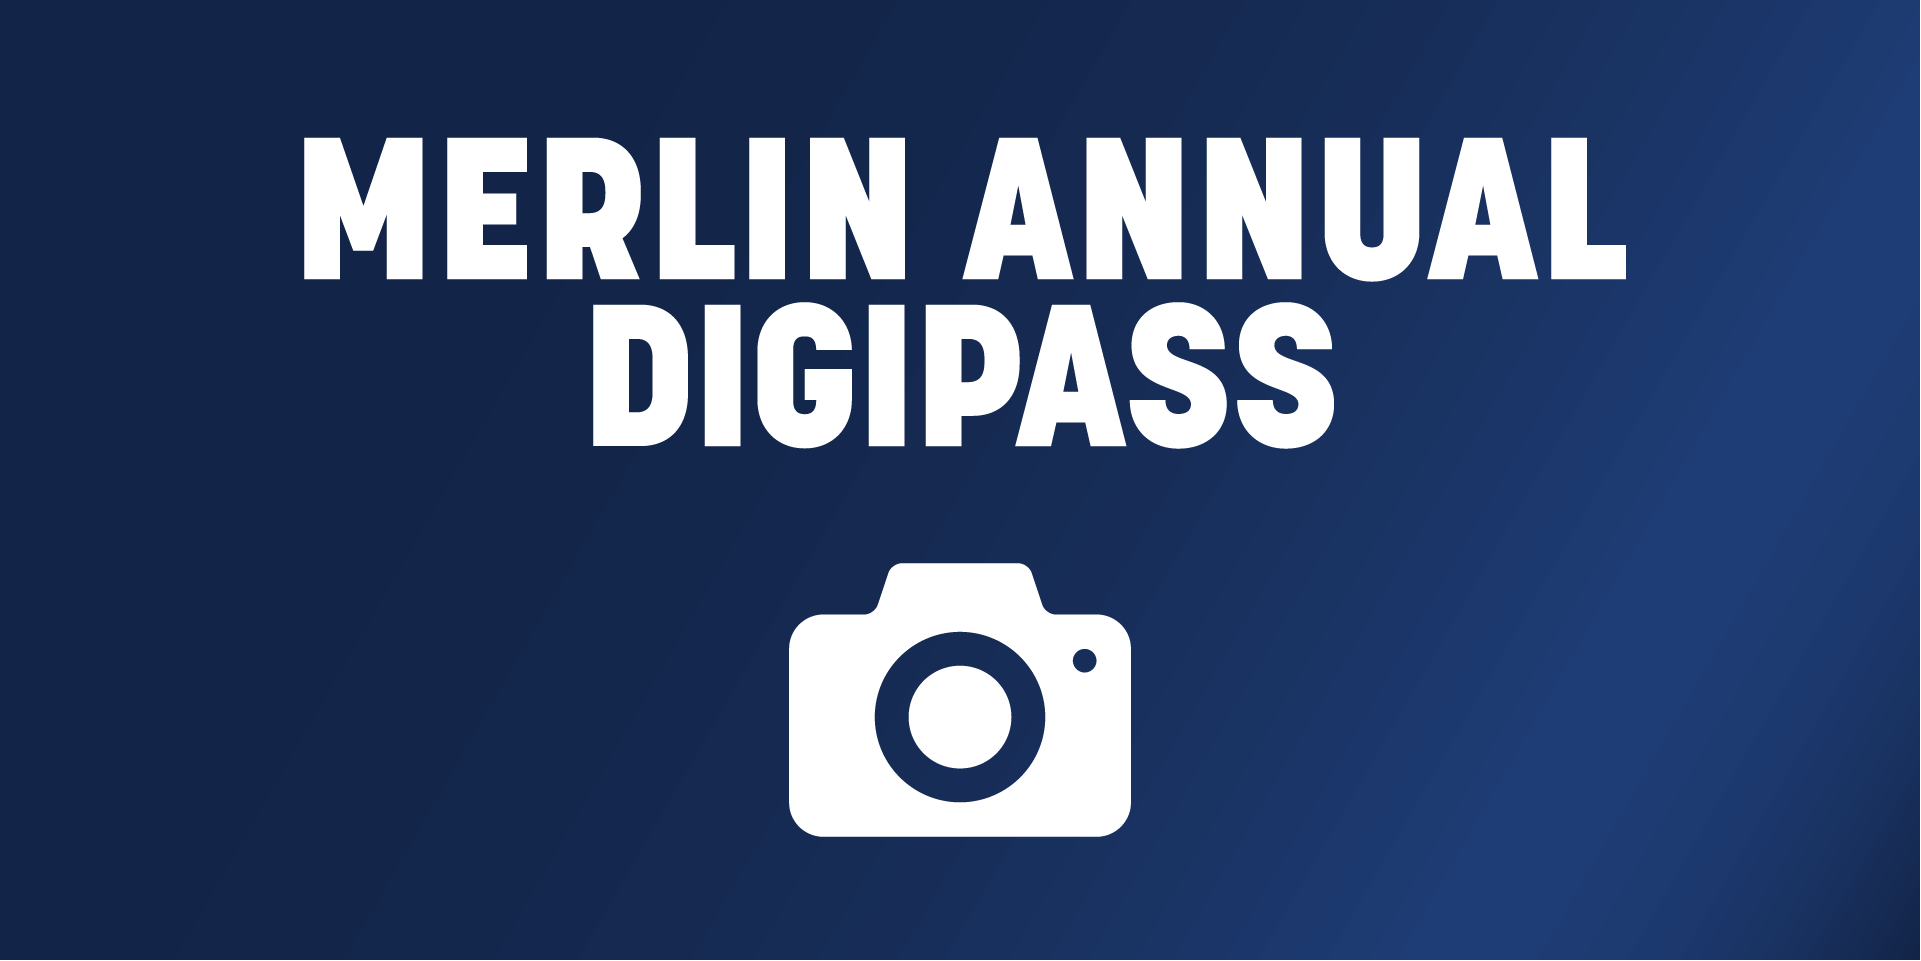 Merlin Annual Digipass